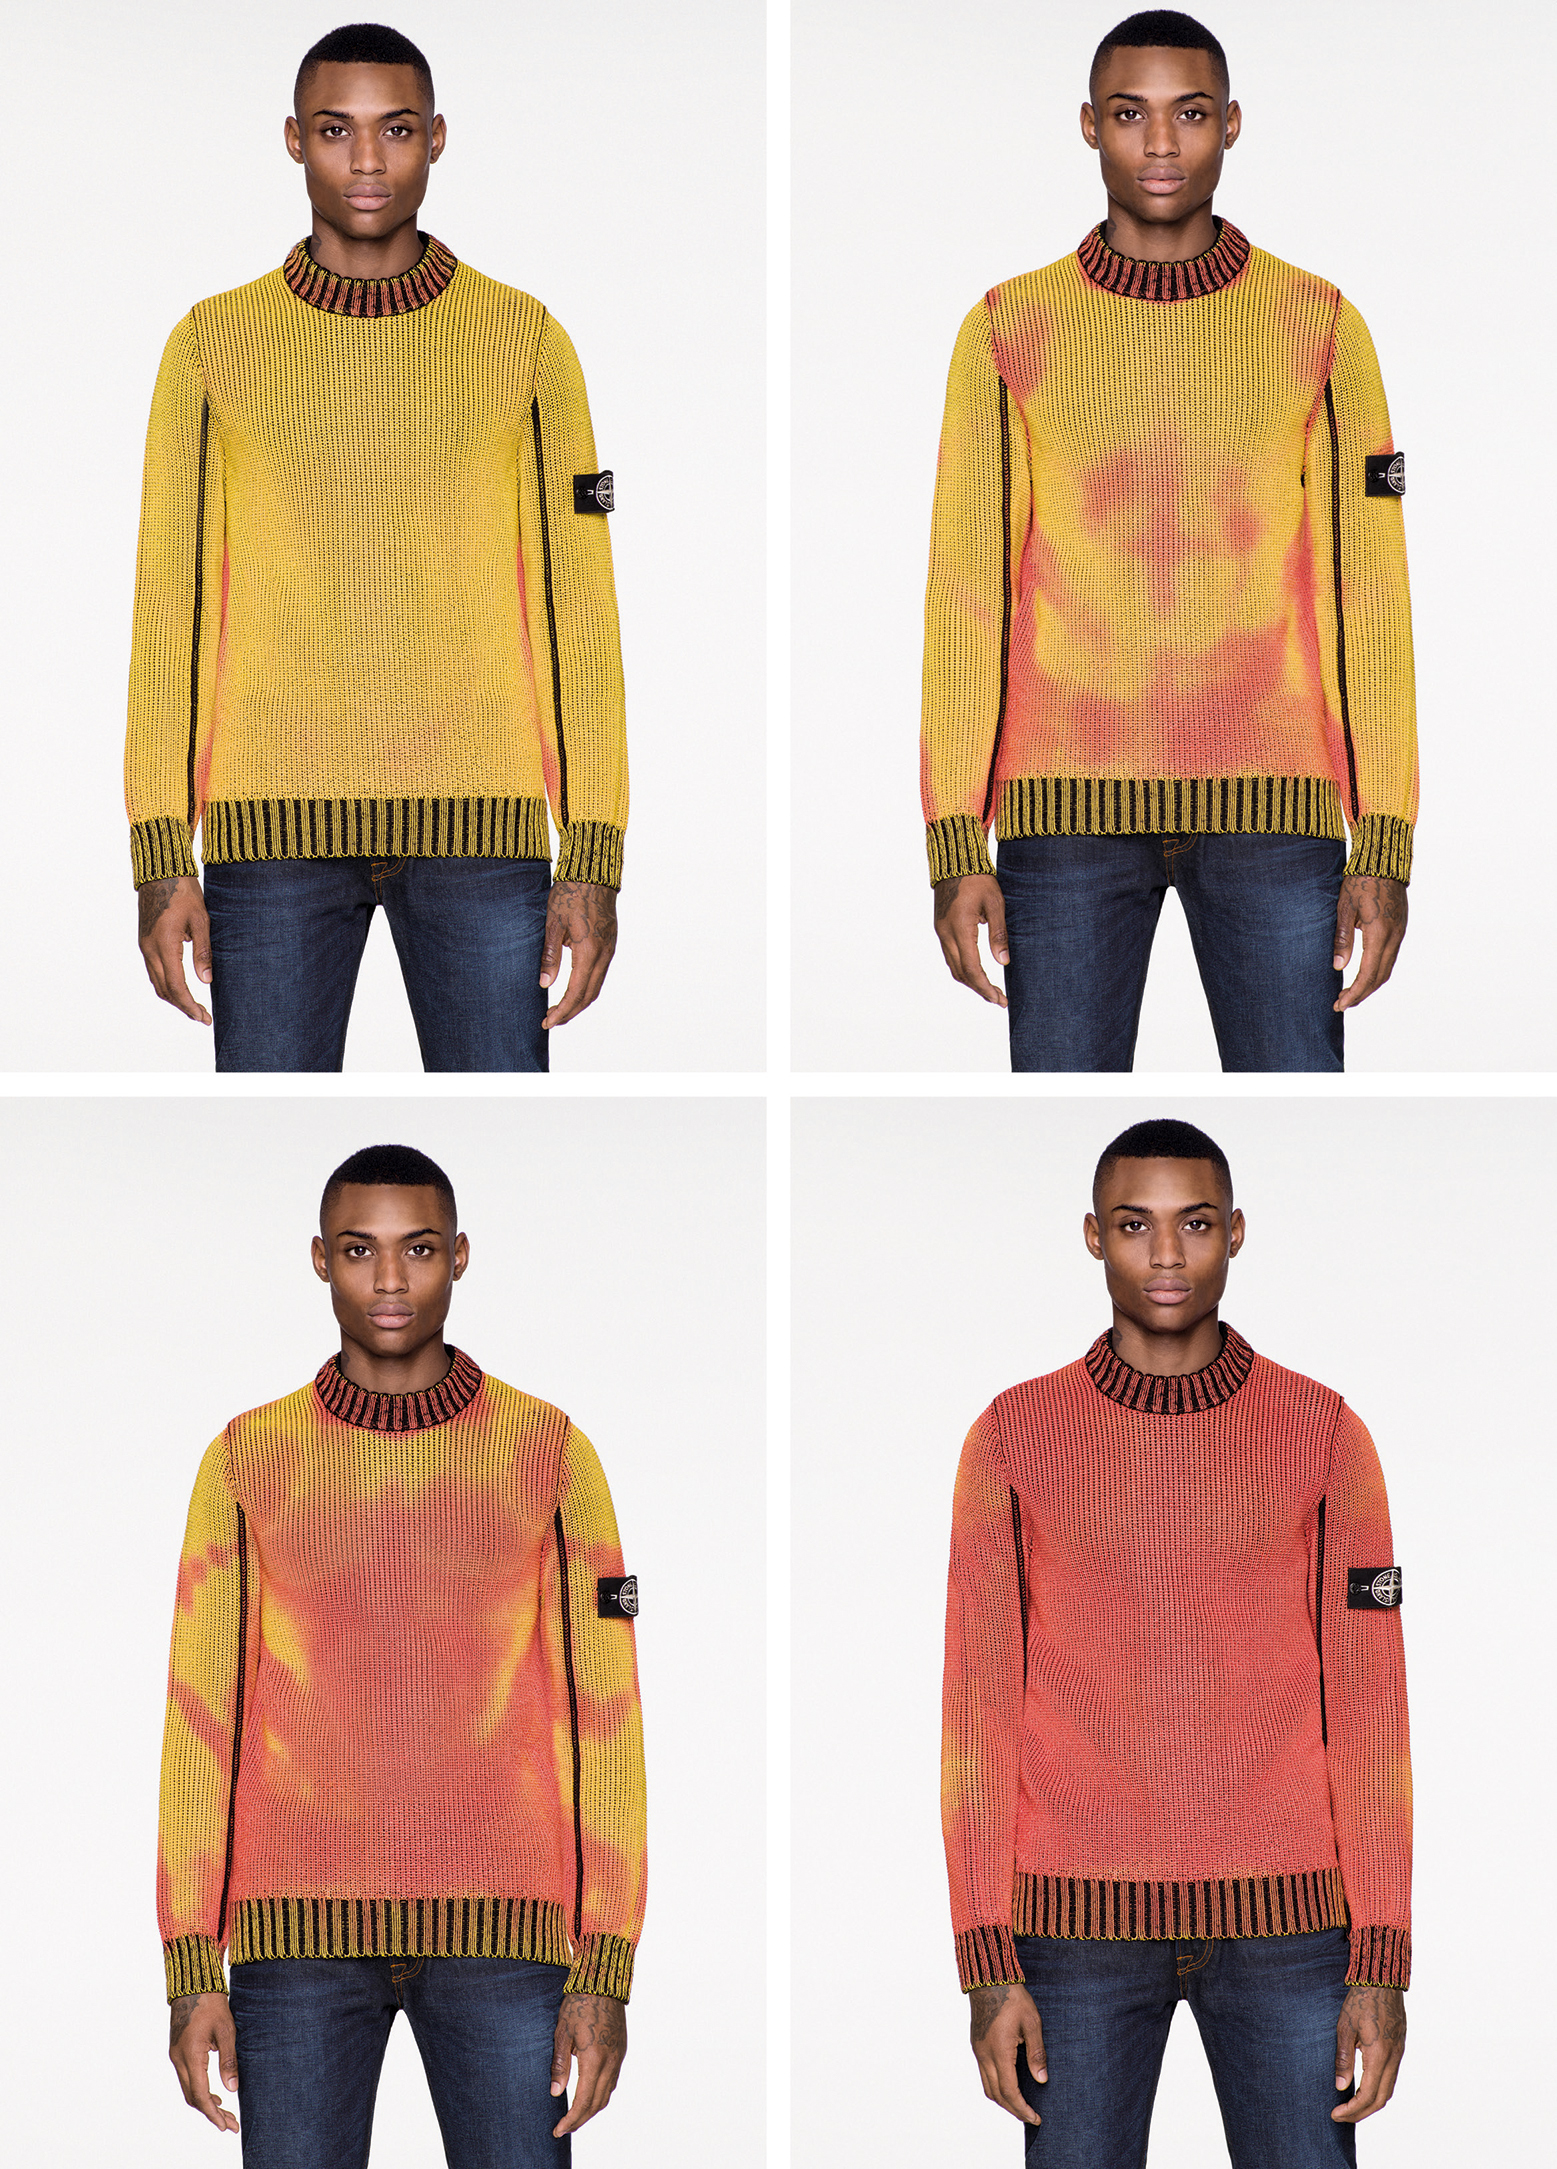 This Autumnal Looking Sweater Changes Colour In Different